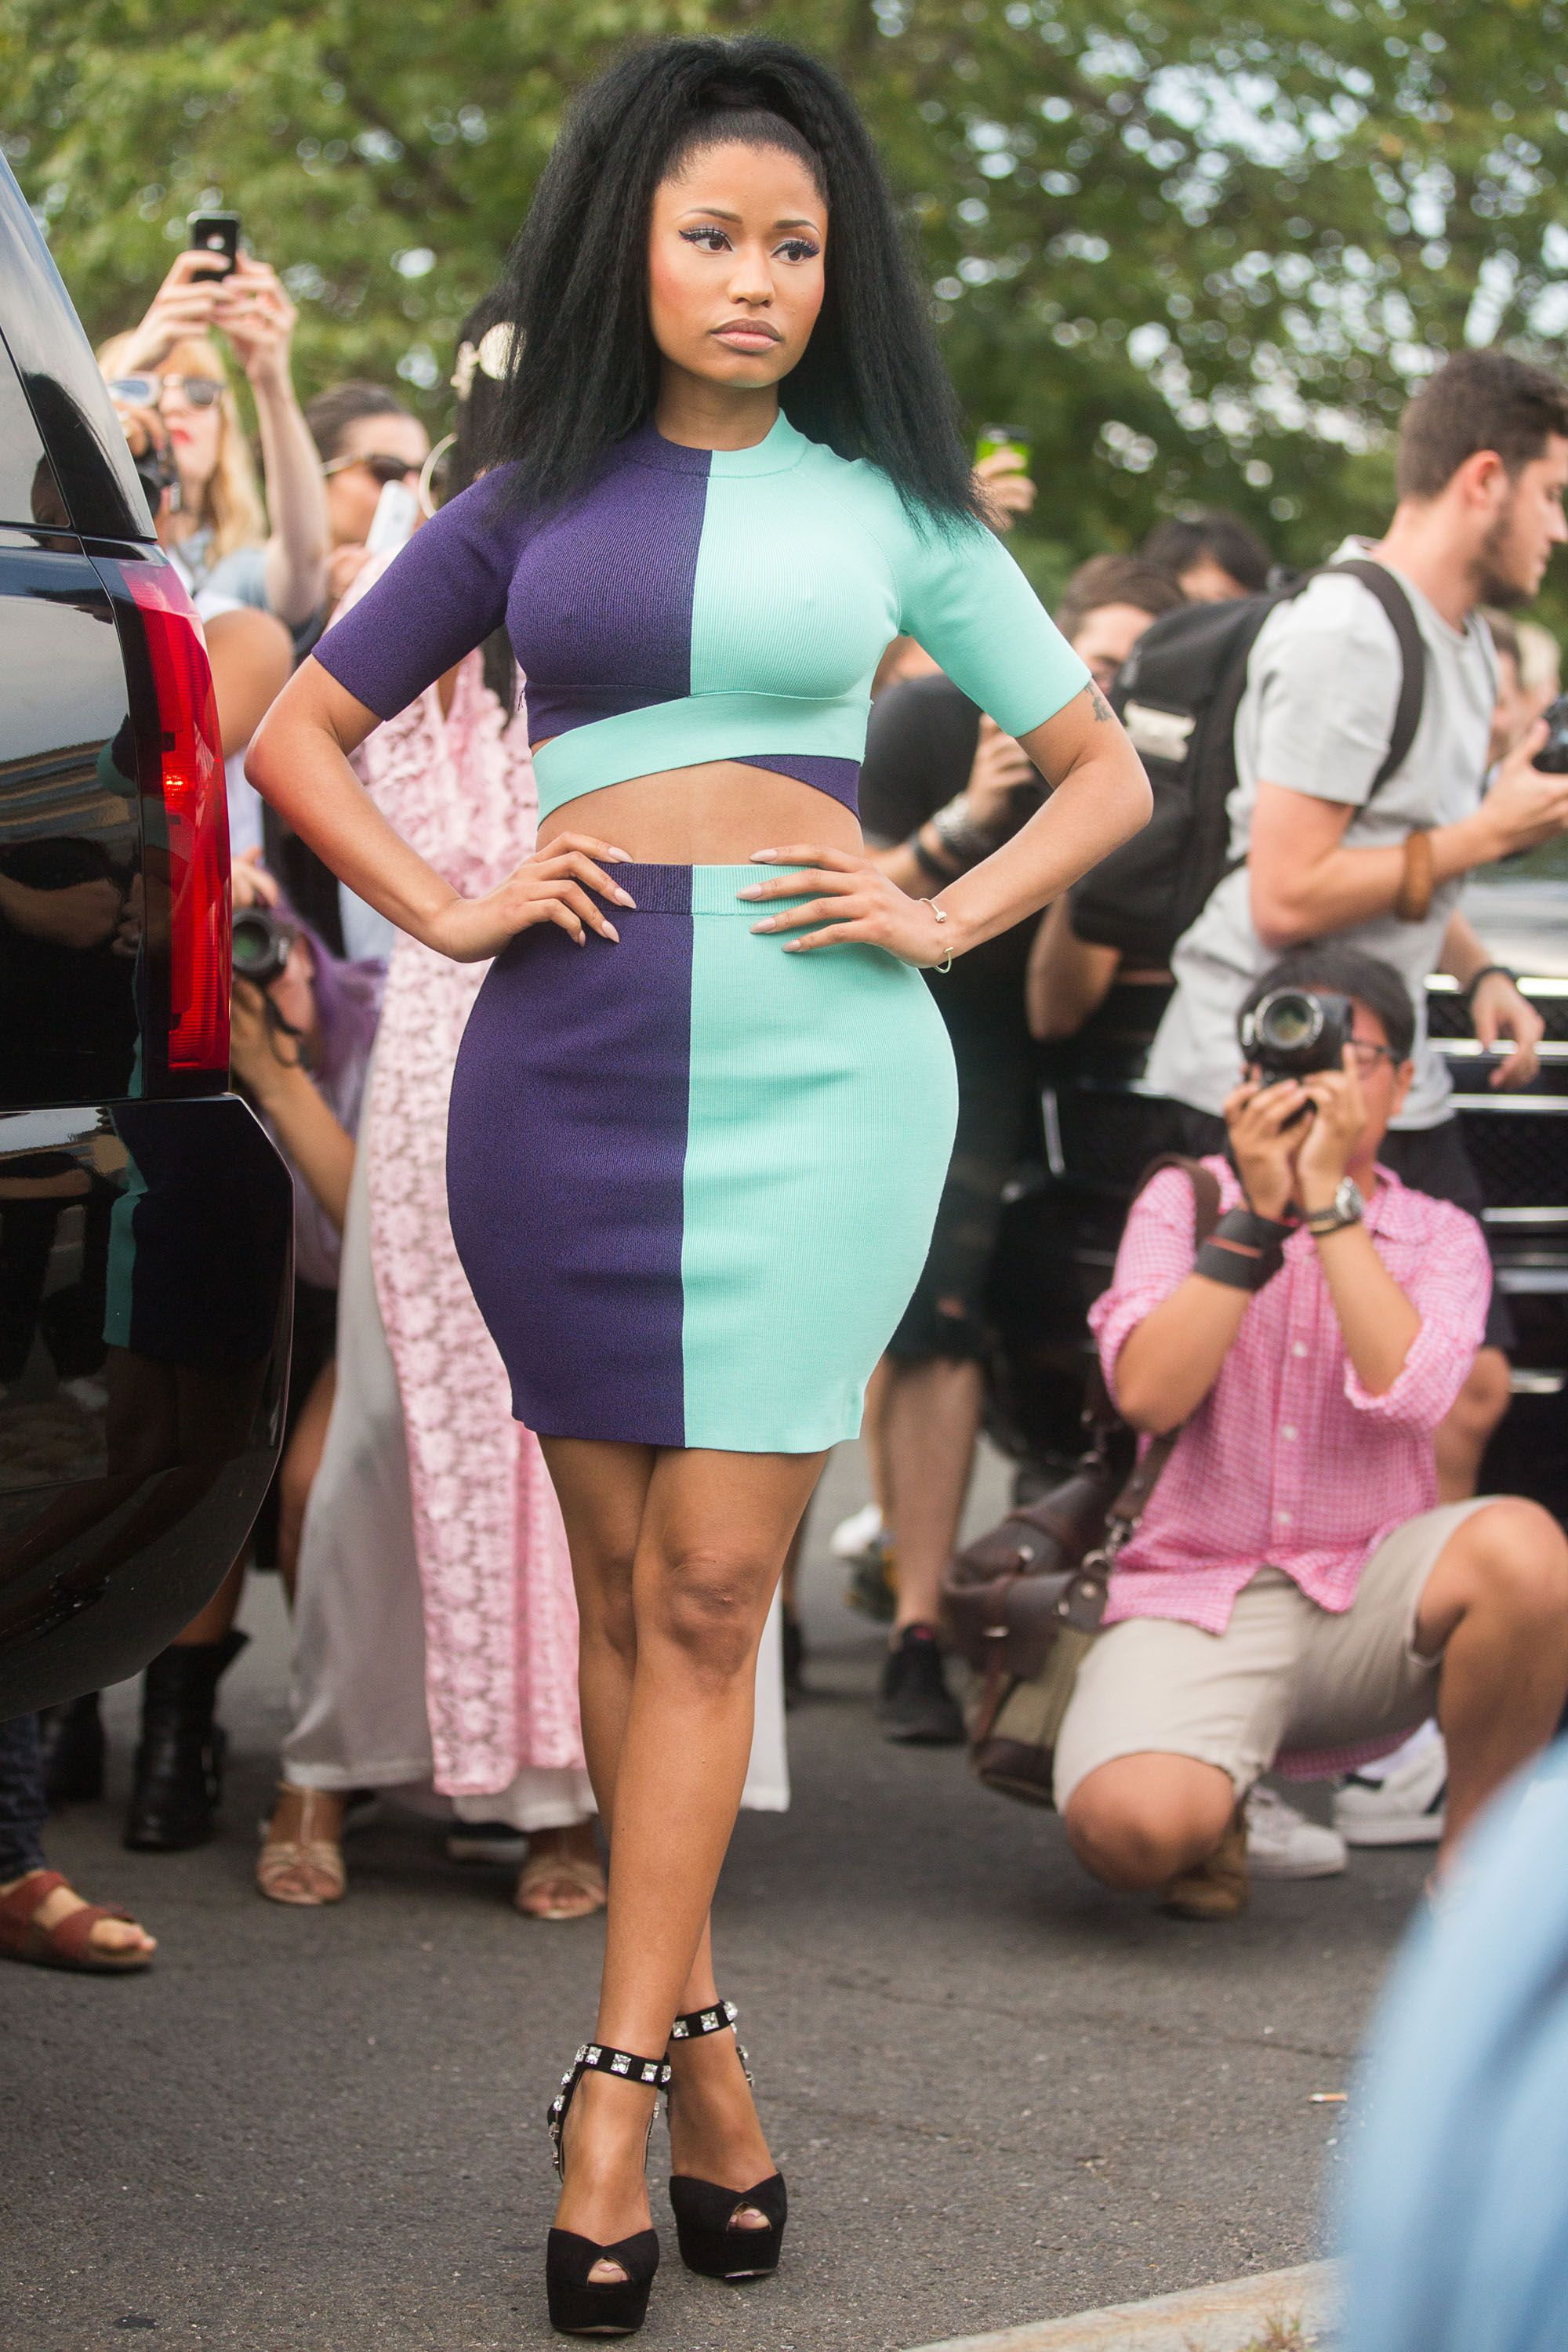 NEW YORK, NY - SEPTEMBER 06:  Musician Nicki Minaj enters Alexander Wang on Day 3 of New York Fashion Week Spring/Summer 2015 on September 6, 2014 in New York City.  (Photo by Melodie Jeng/Getty Images)